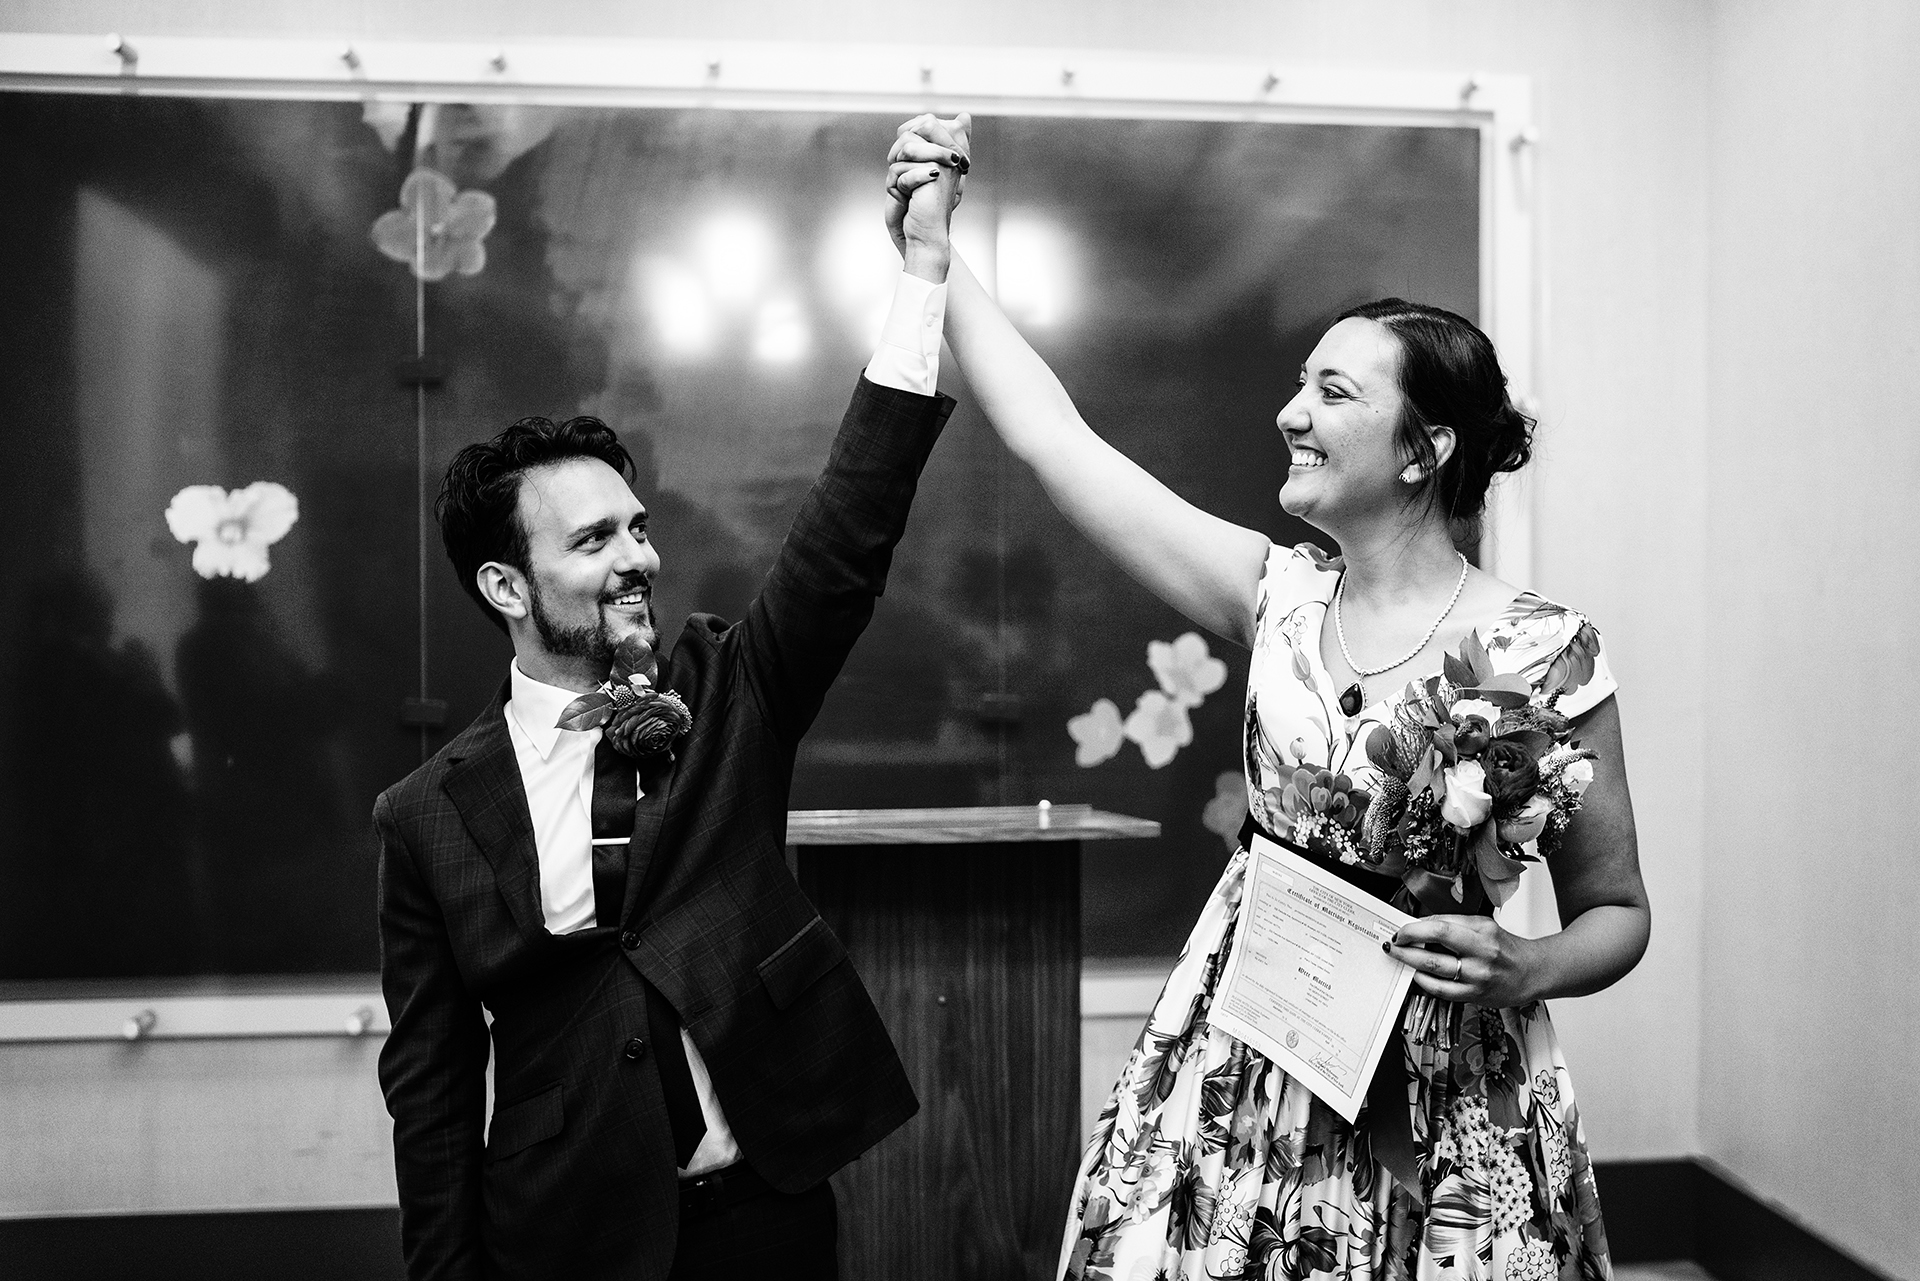 City Hall Elopement Photographer for NY | Ready to conquer the world together, the couple celebrates their marriage